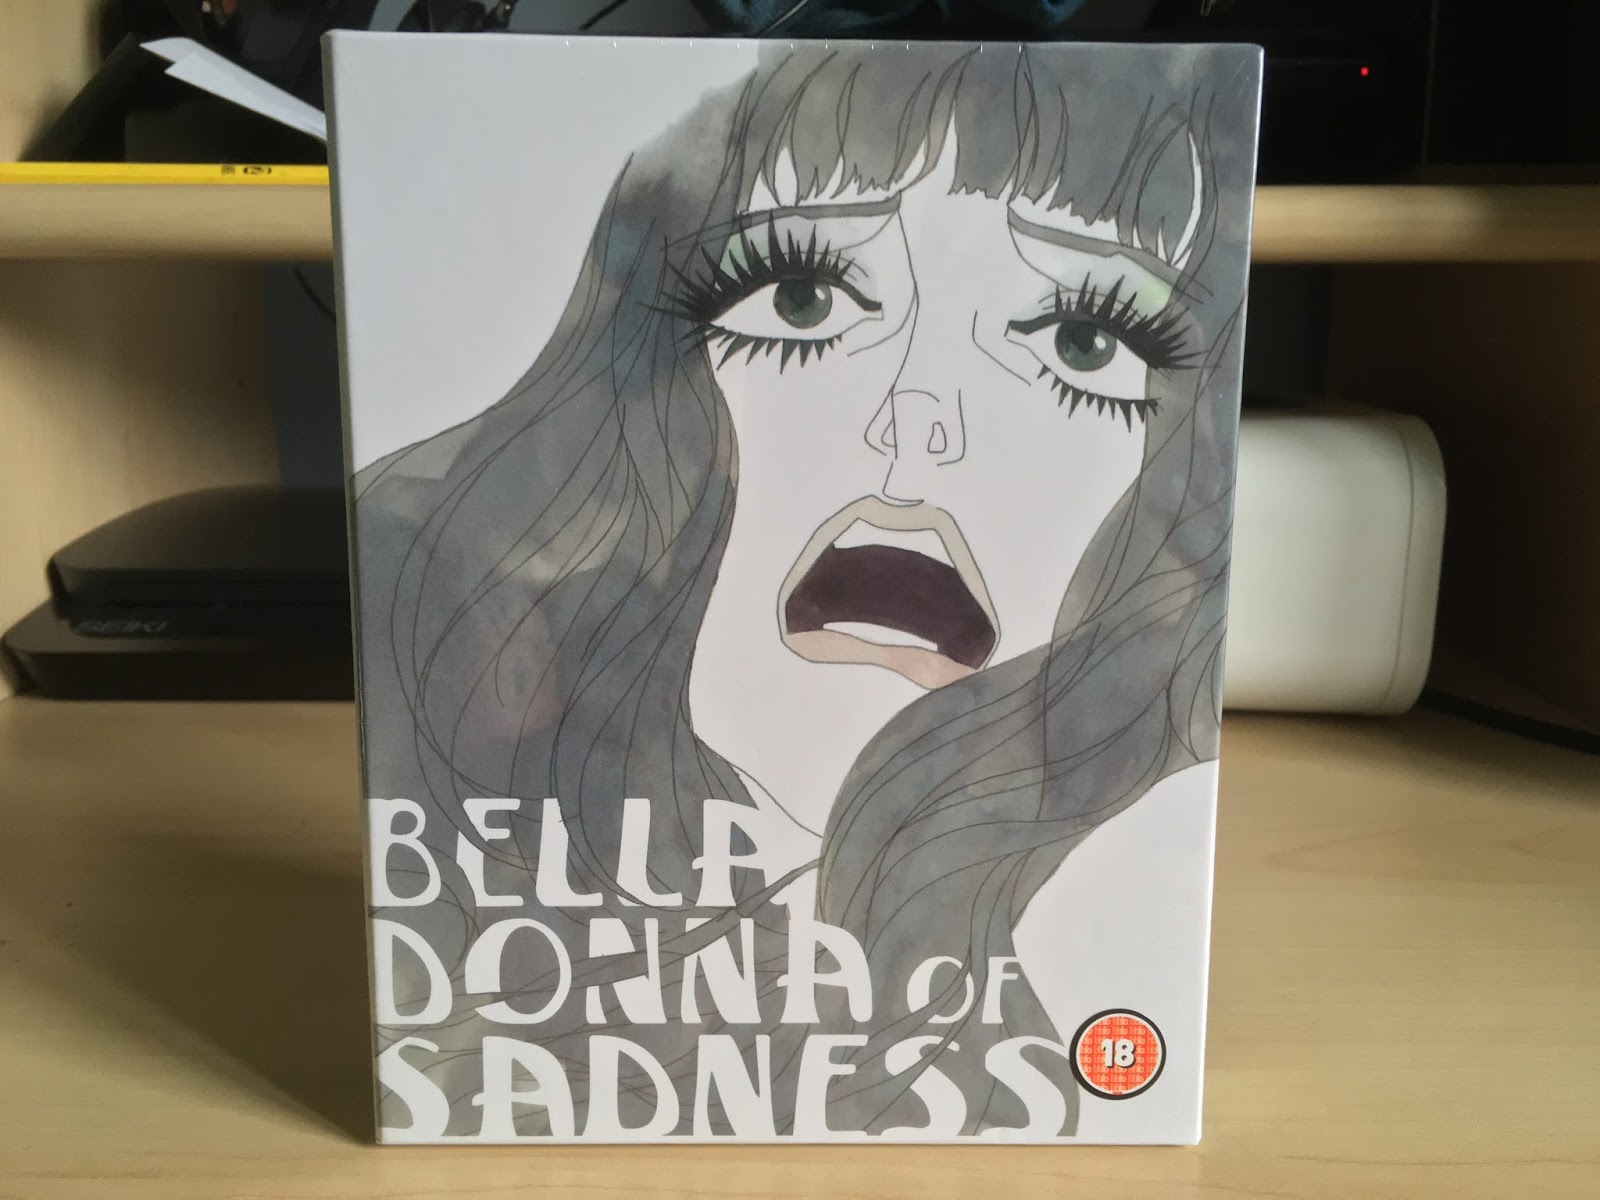 Unboxing Uk Belladonna Of Sadness Collectors Edition Blu Ray Tendencies Tshirt Punk Cokelat Tua S Nsfw